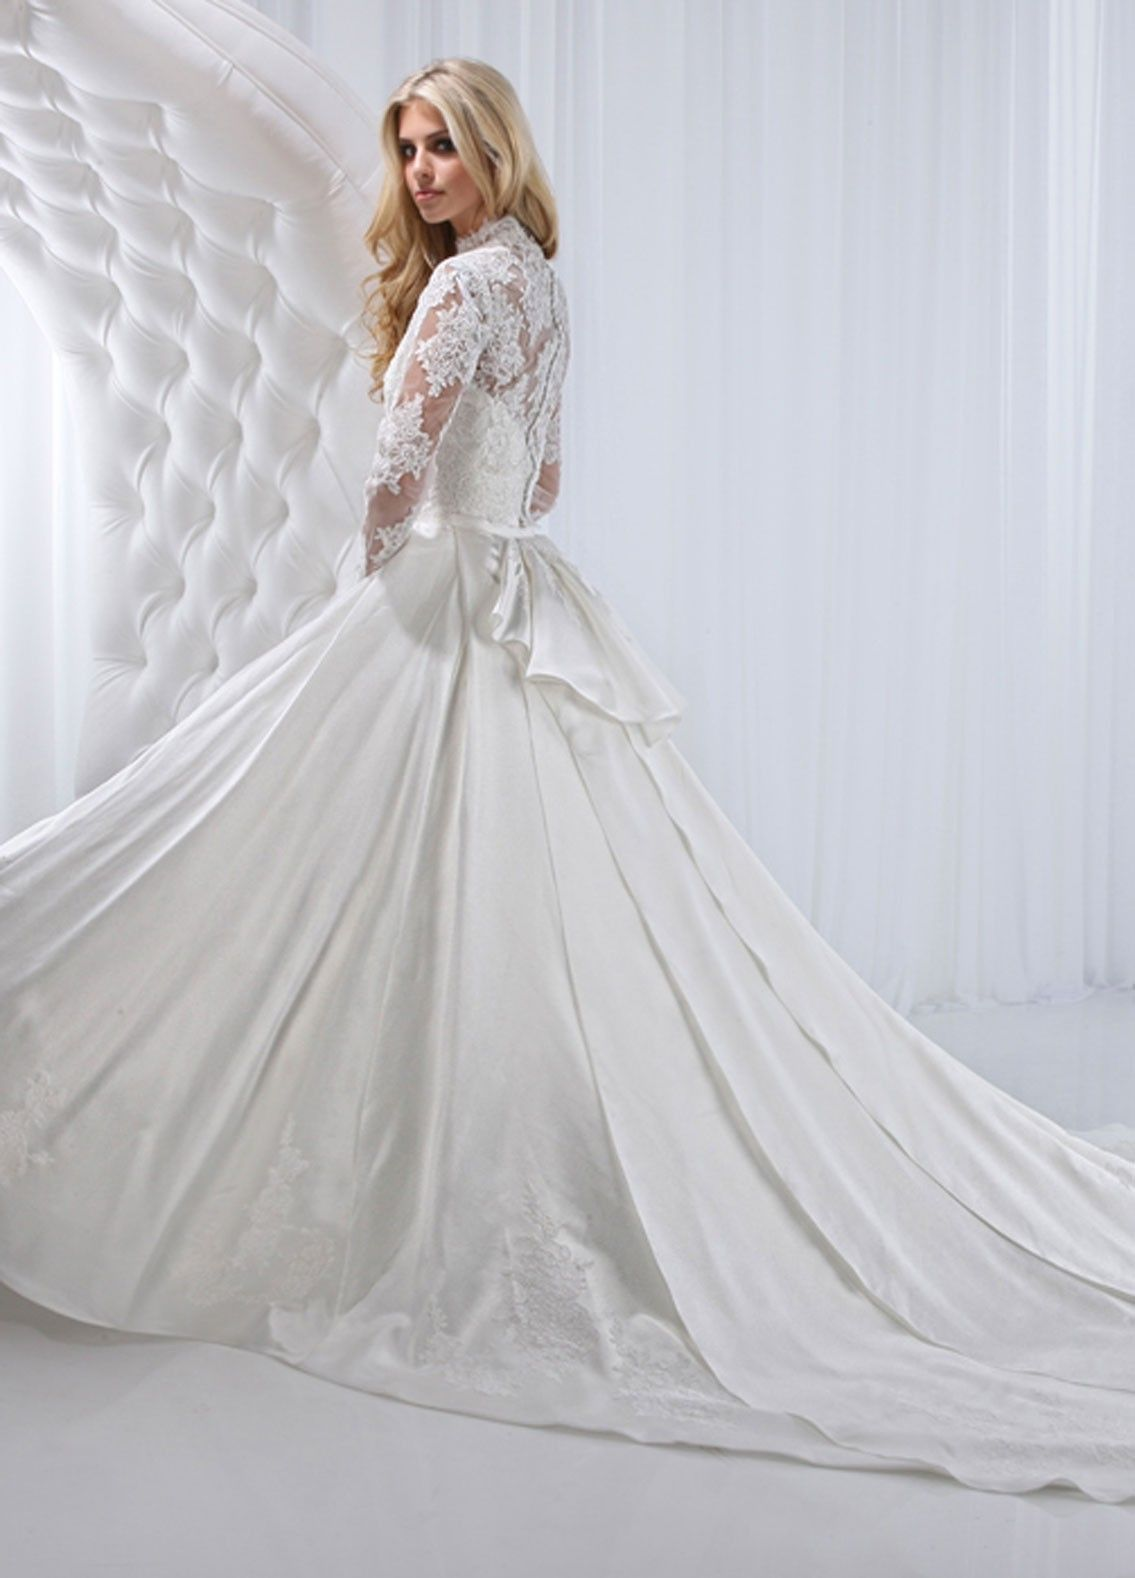 Satin Fabric High Fabric With Applique Embellished Wedding Dress ...